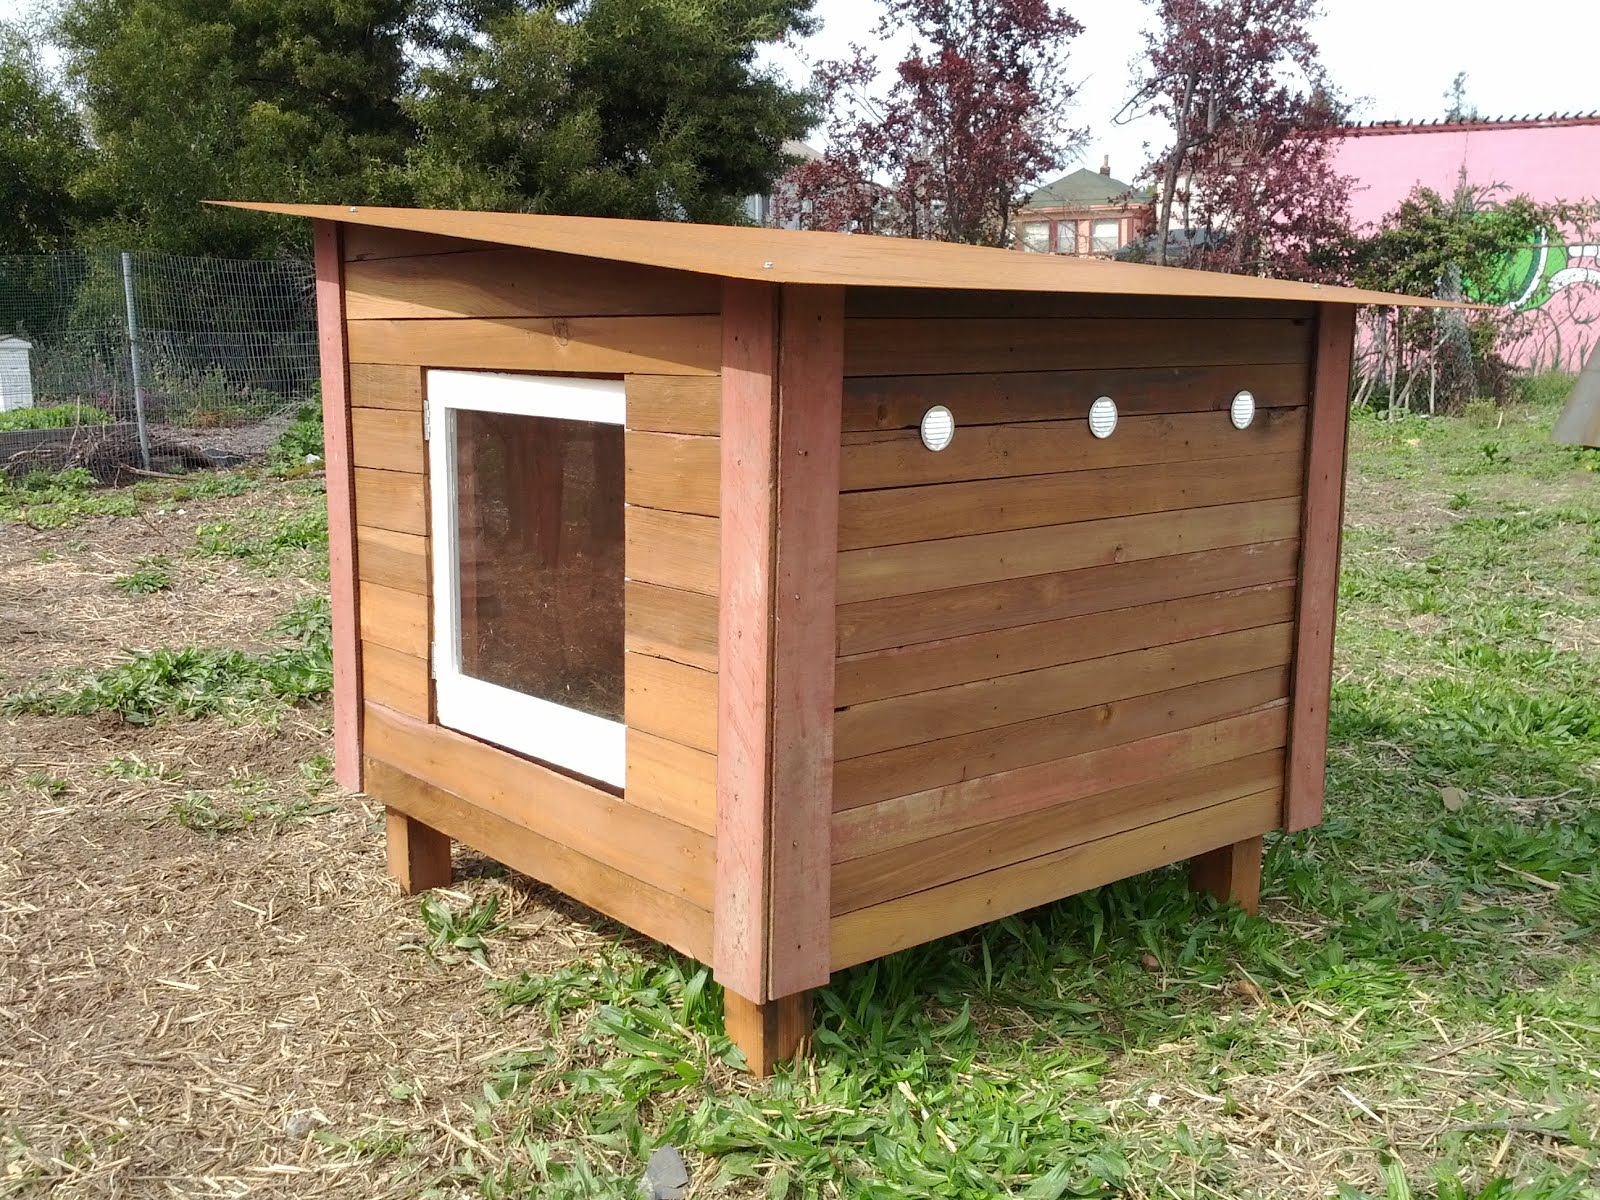 Just fine design build 2 new chicken coops on display and for Basic chicken coop